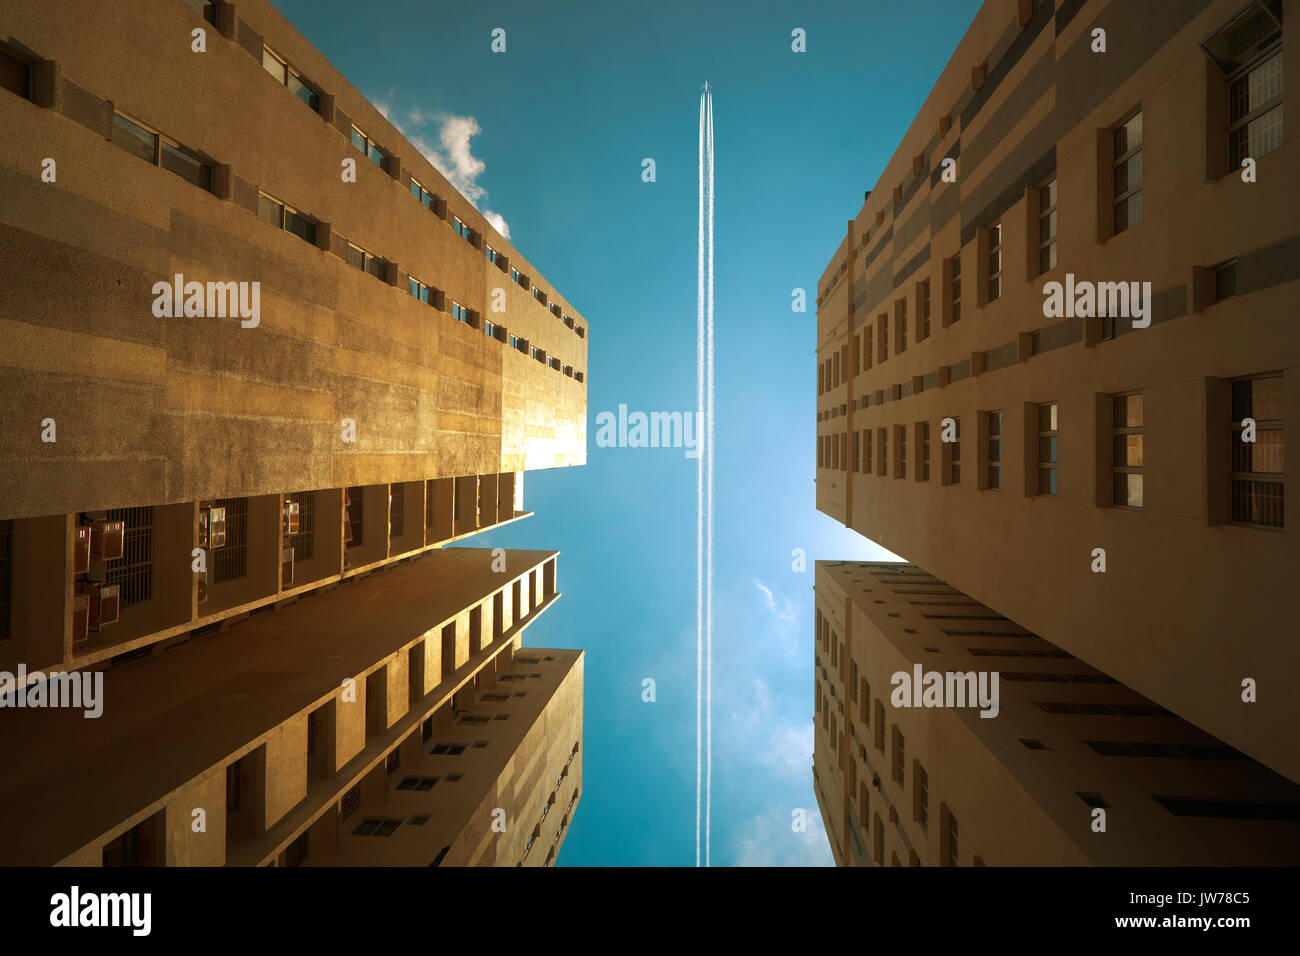 Airplane contrail against clear blue sky with abstract low angle view of common modern business skyscrapers. - Stock Image